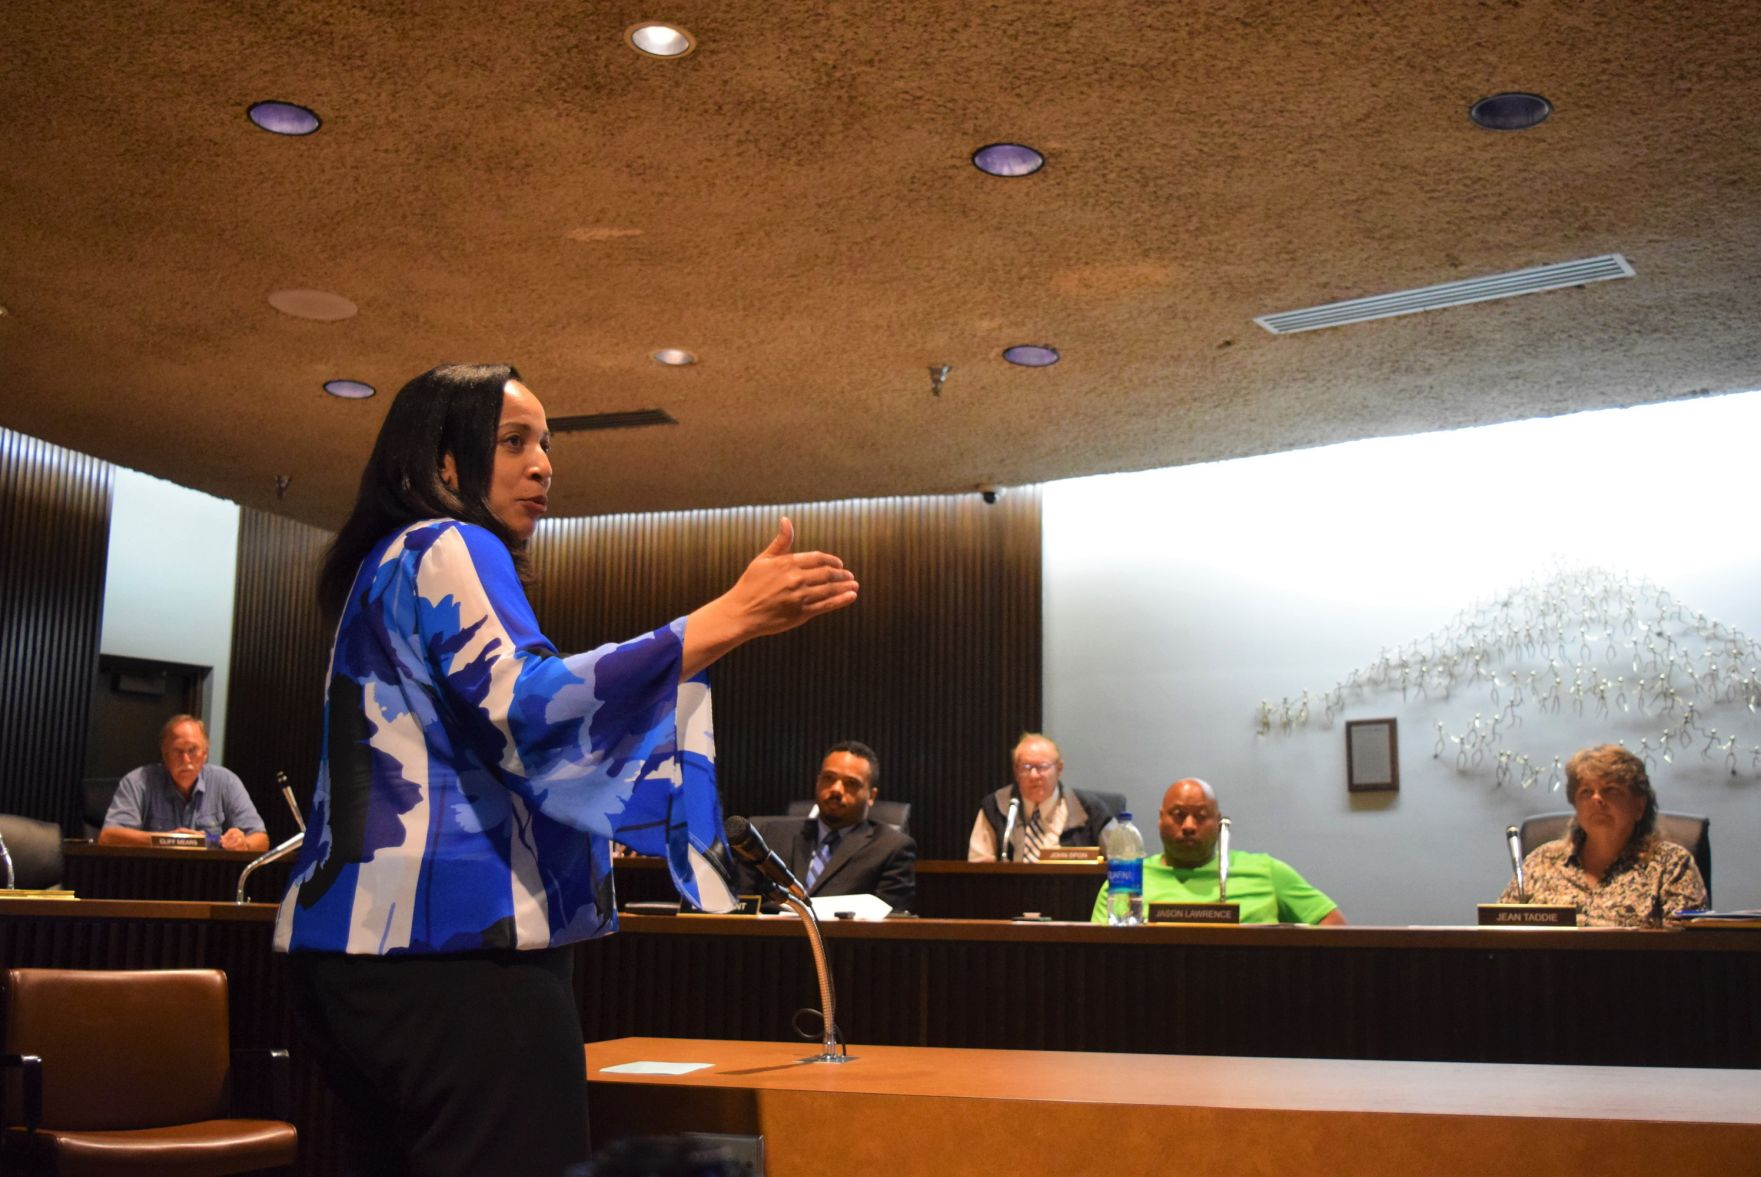 GALLERY: Gun violence in Mansfield discussed